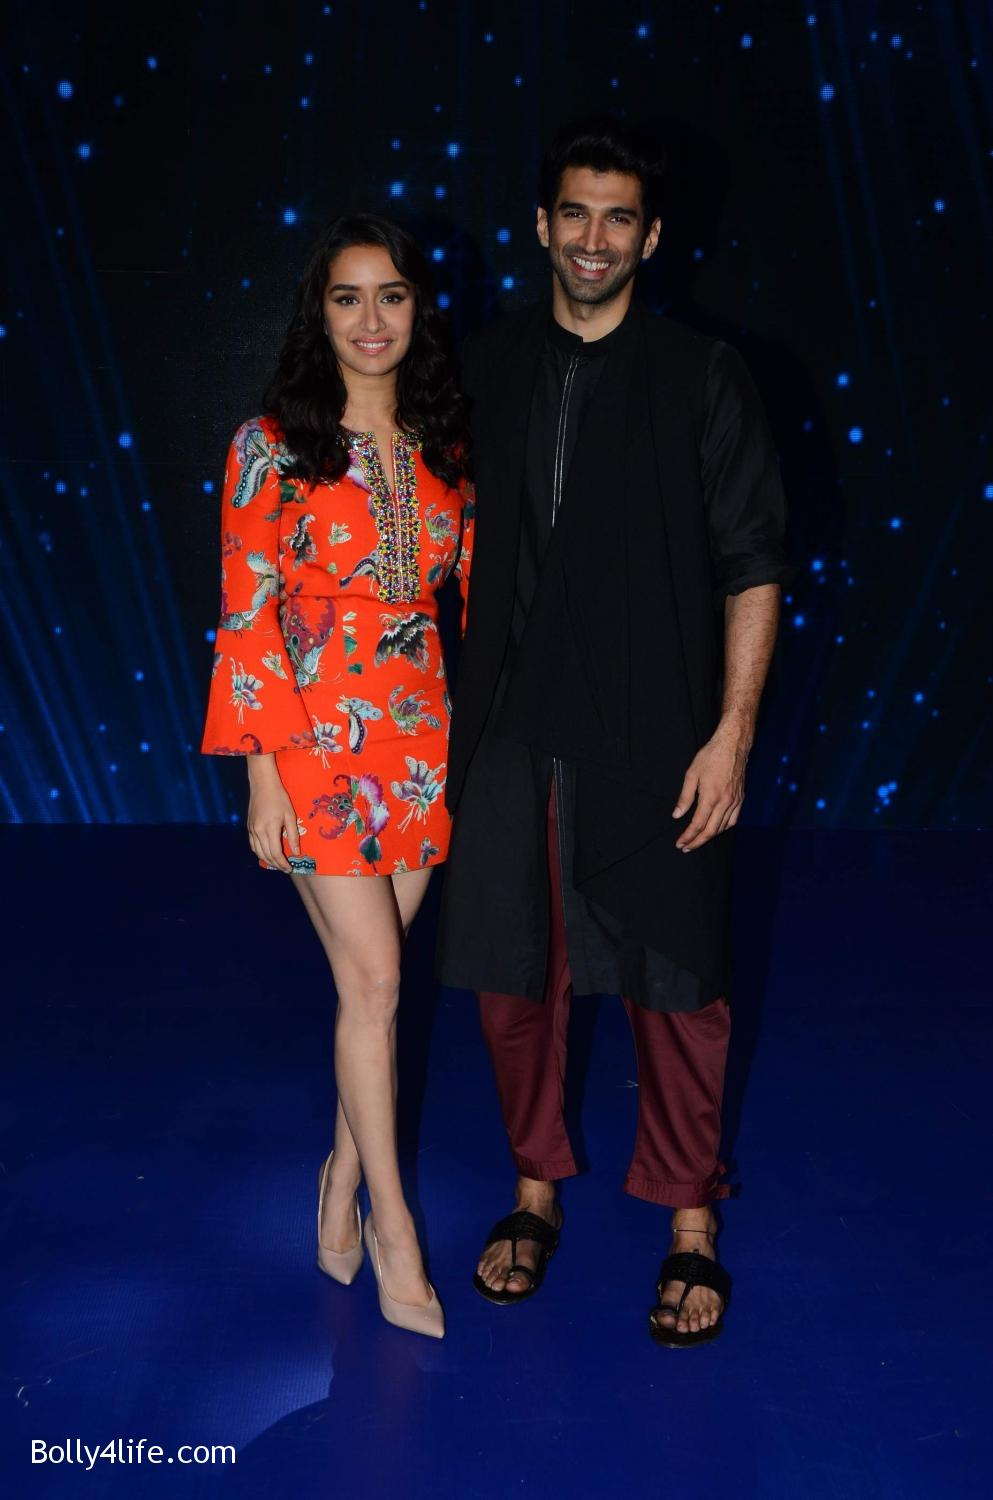 Shraddha-Kapoor-and-Aditya-Roy-Kapur-visit-on-the-set-of-Indian-Idol-Season-9-7.jpg